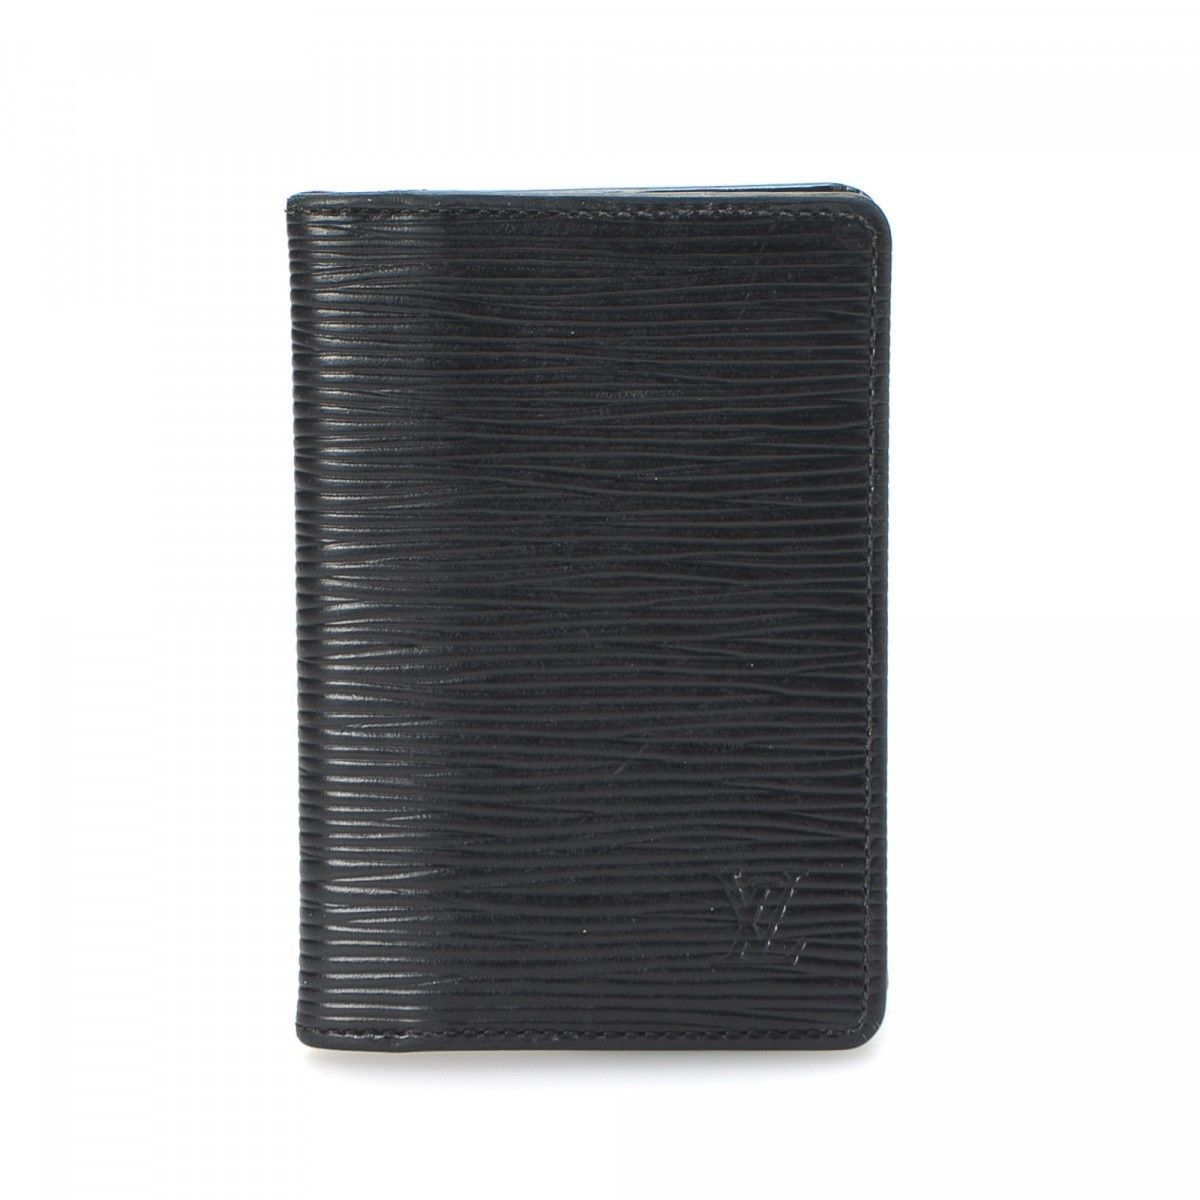 louis vuitton card holder. louis vuitton card holder epi leather - lxrandco pre-owned luxury vintage 2